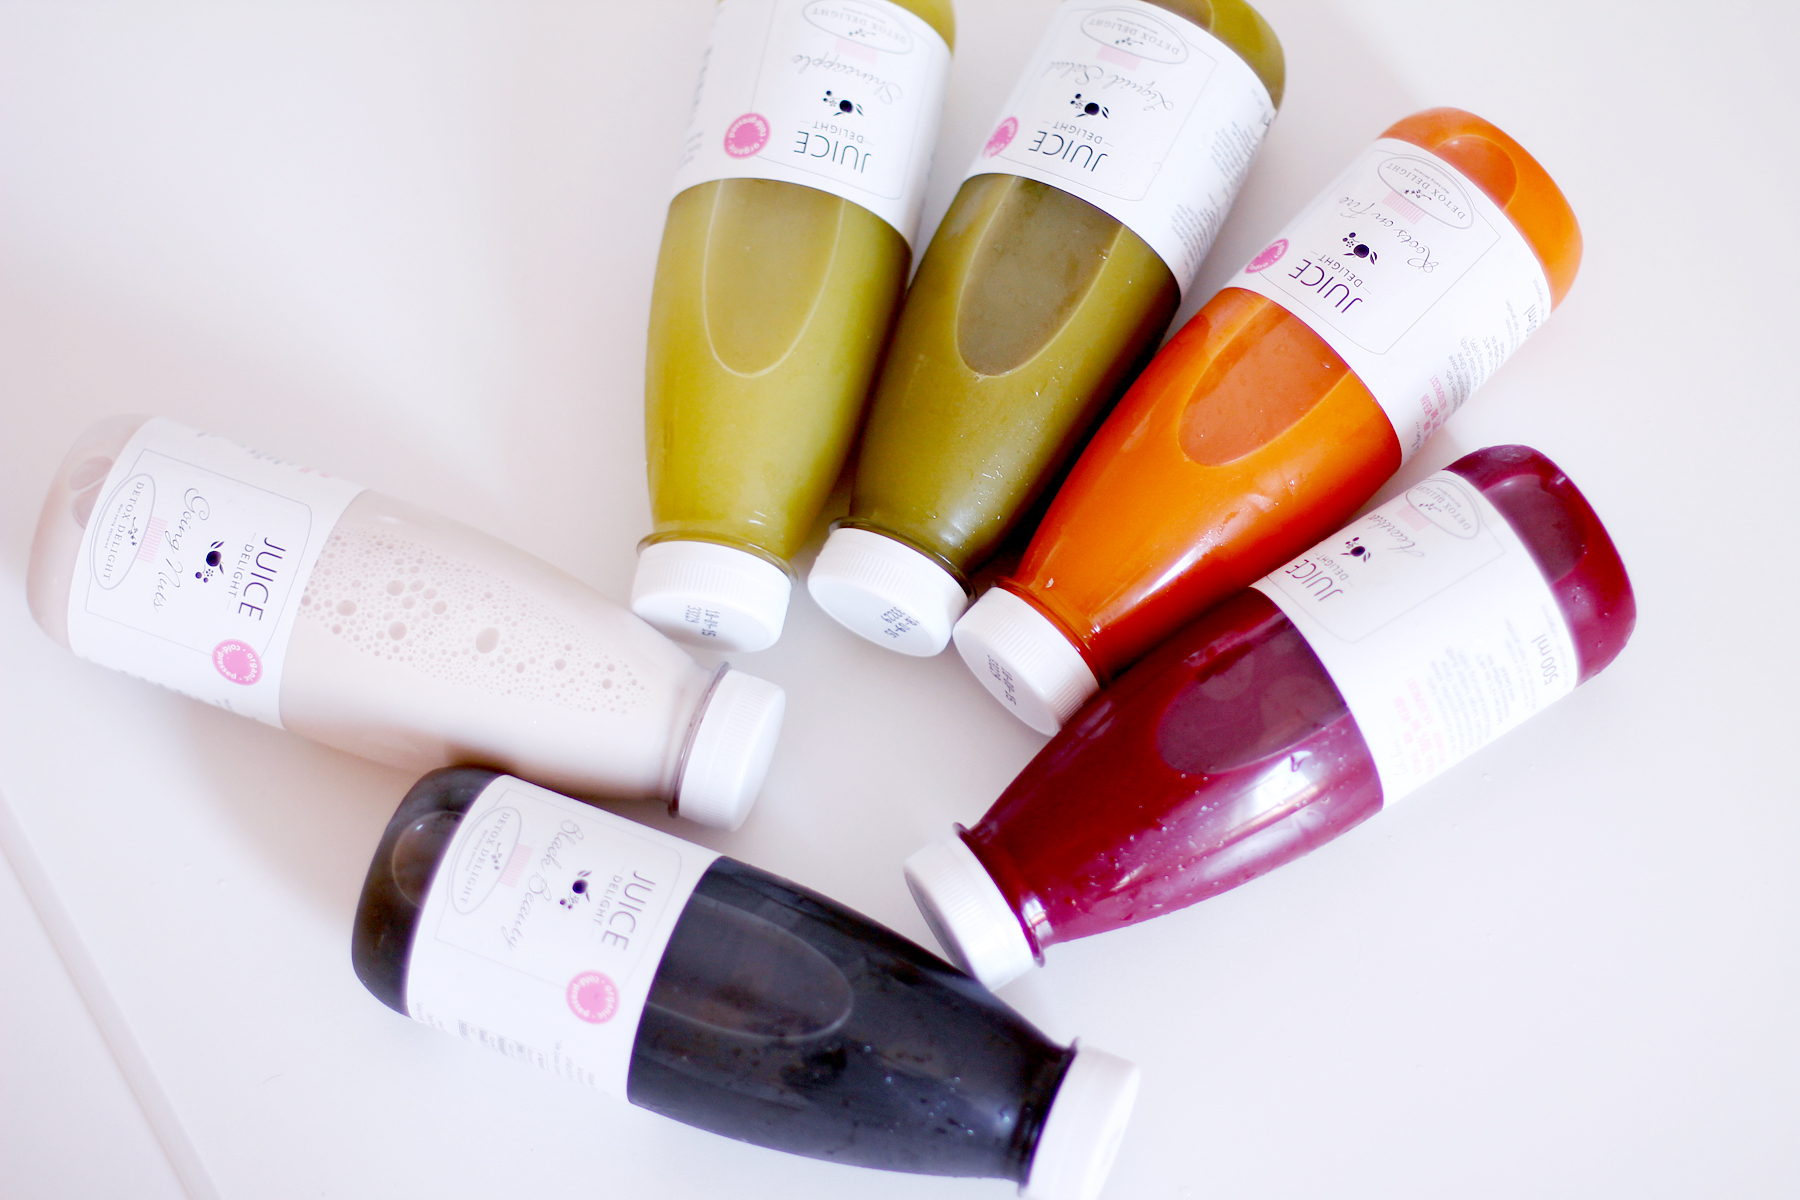 detox delight juice delight easy juice cleanse saftkur entgiften münchen kaltgepresst bio säfte saft cold pressed ricarda schernus cats & dogs lifestyle blog fashion blog 5